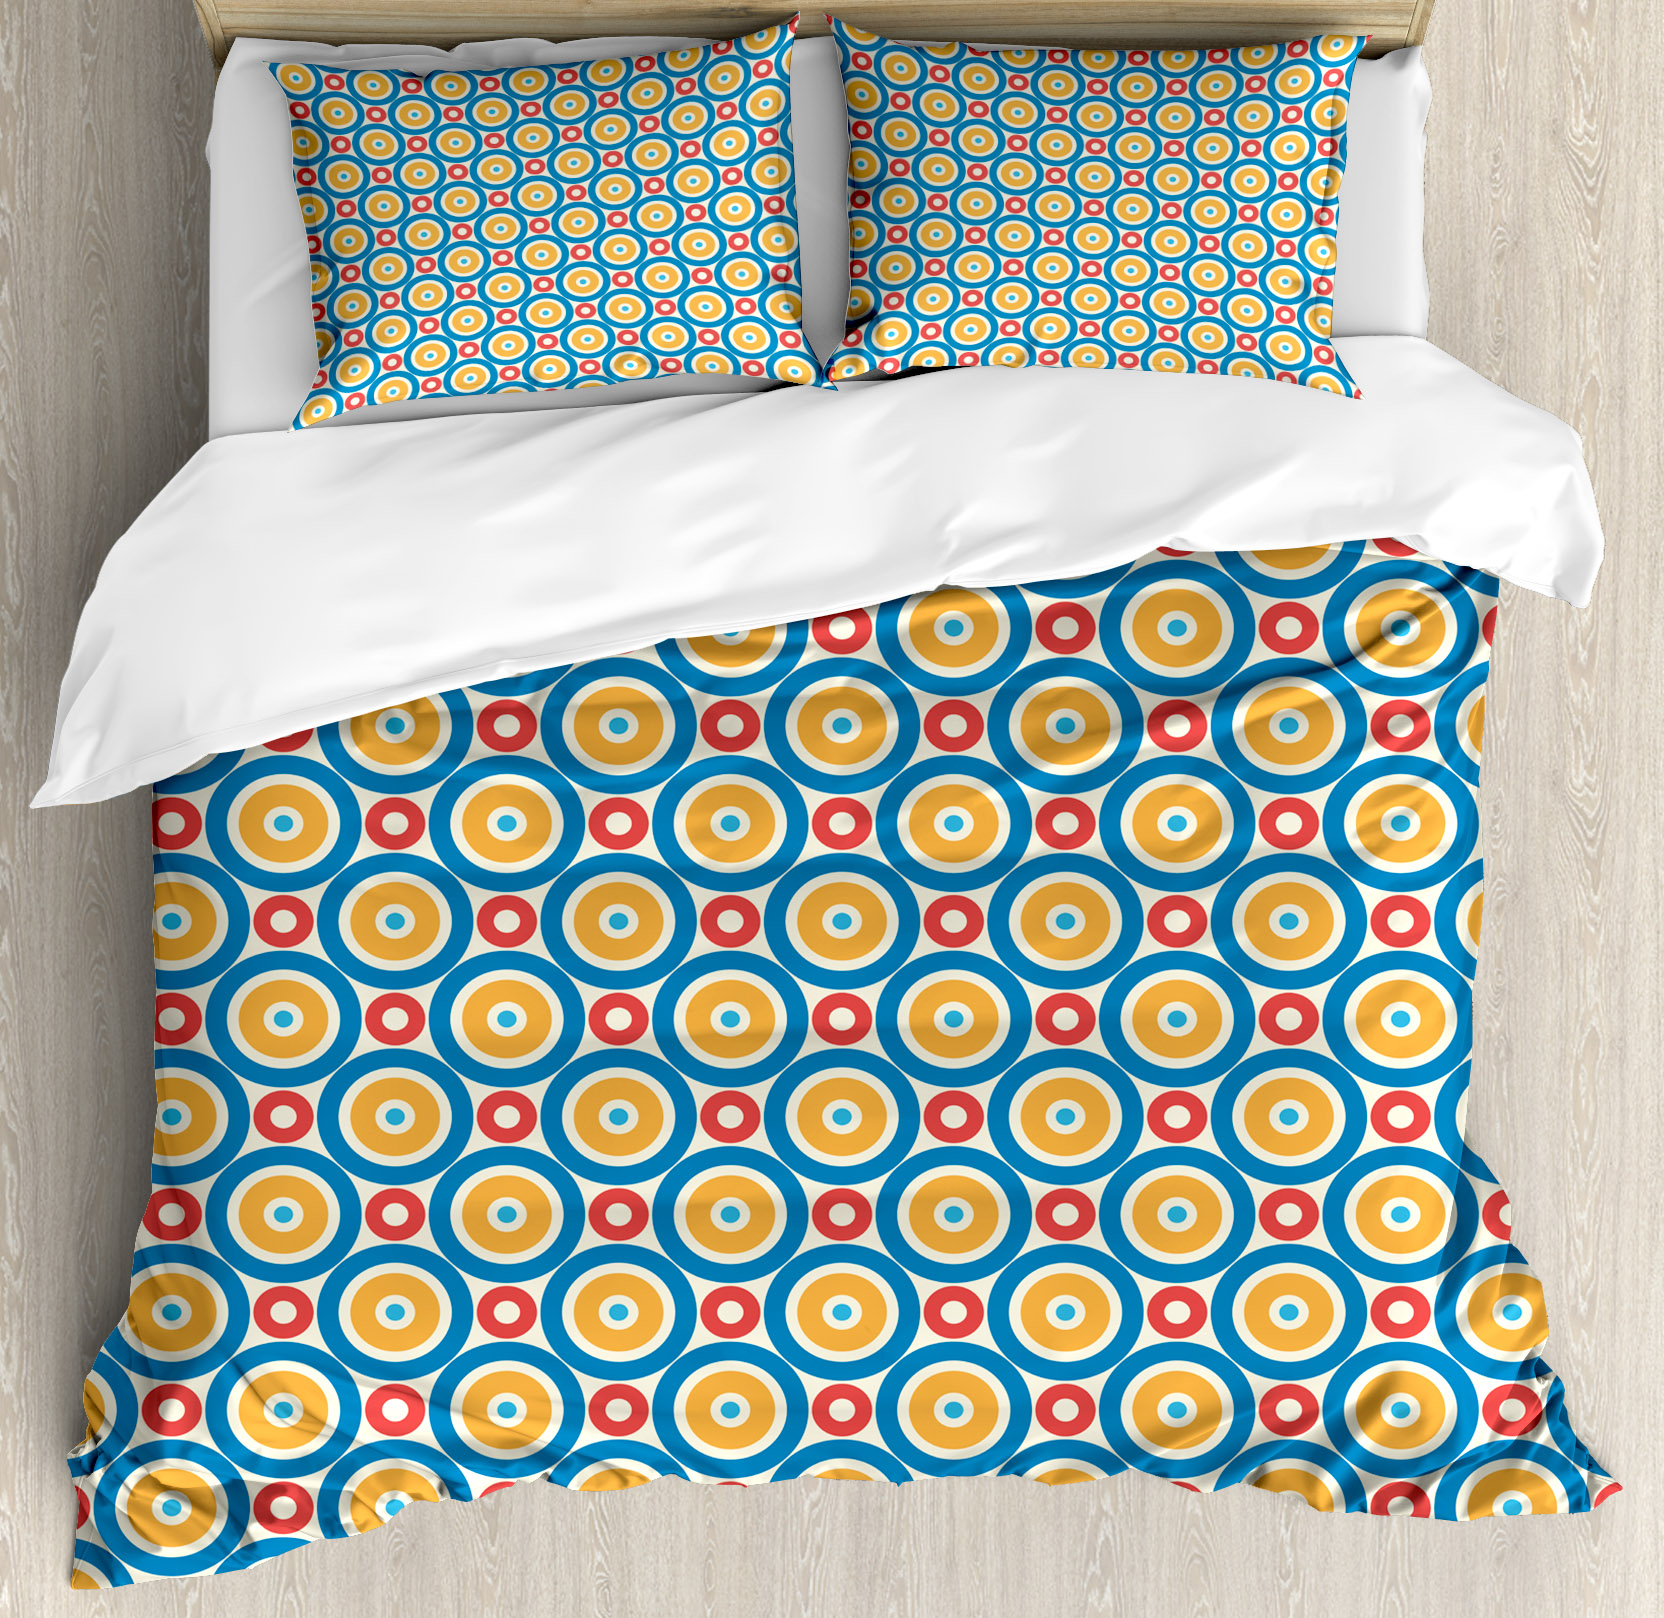 Kids King Size Duvet Cover Set, Big and Small Circles with Dots Vibrant Colored Symmetrical Tile Pattern, Decorative 3 Piece Bedding Set with 2 Pillow Shams, Blue Marigold Scarlet, by Ambesonne